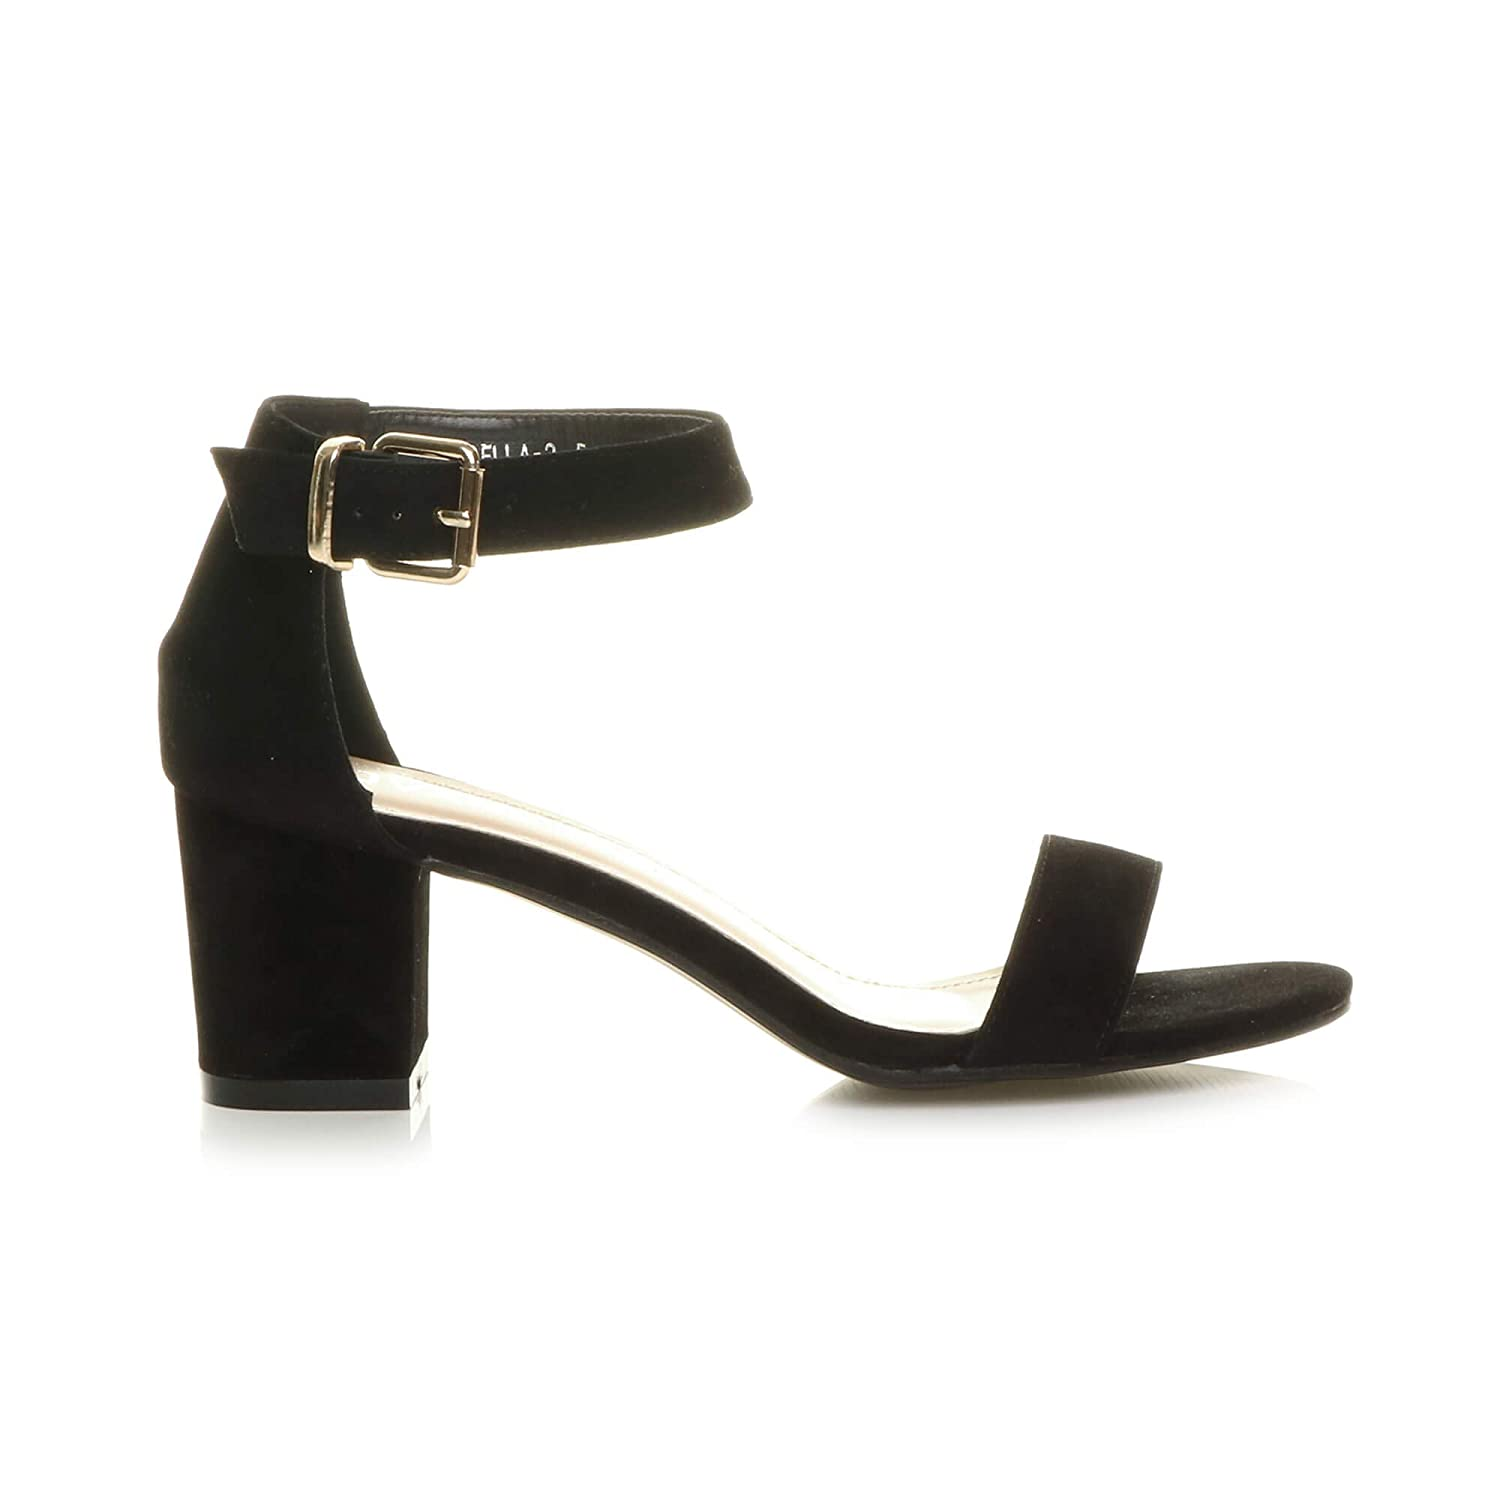 e60f3cf5993 Womens Ladies Low mid Block Heel peep Toe Buckle Ankle Strap Party Strappy  Sandals Shoes Size